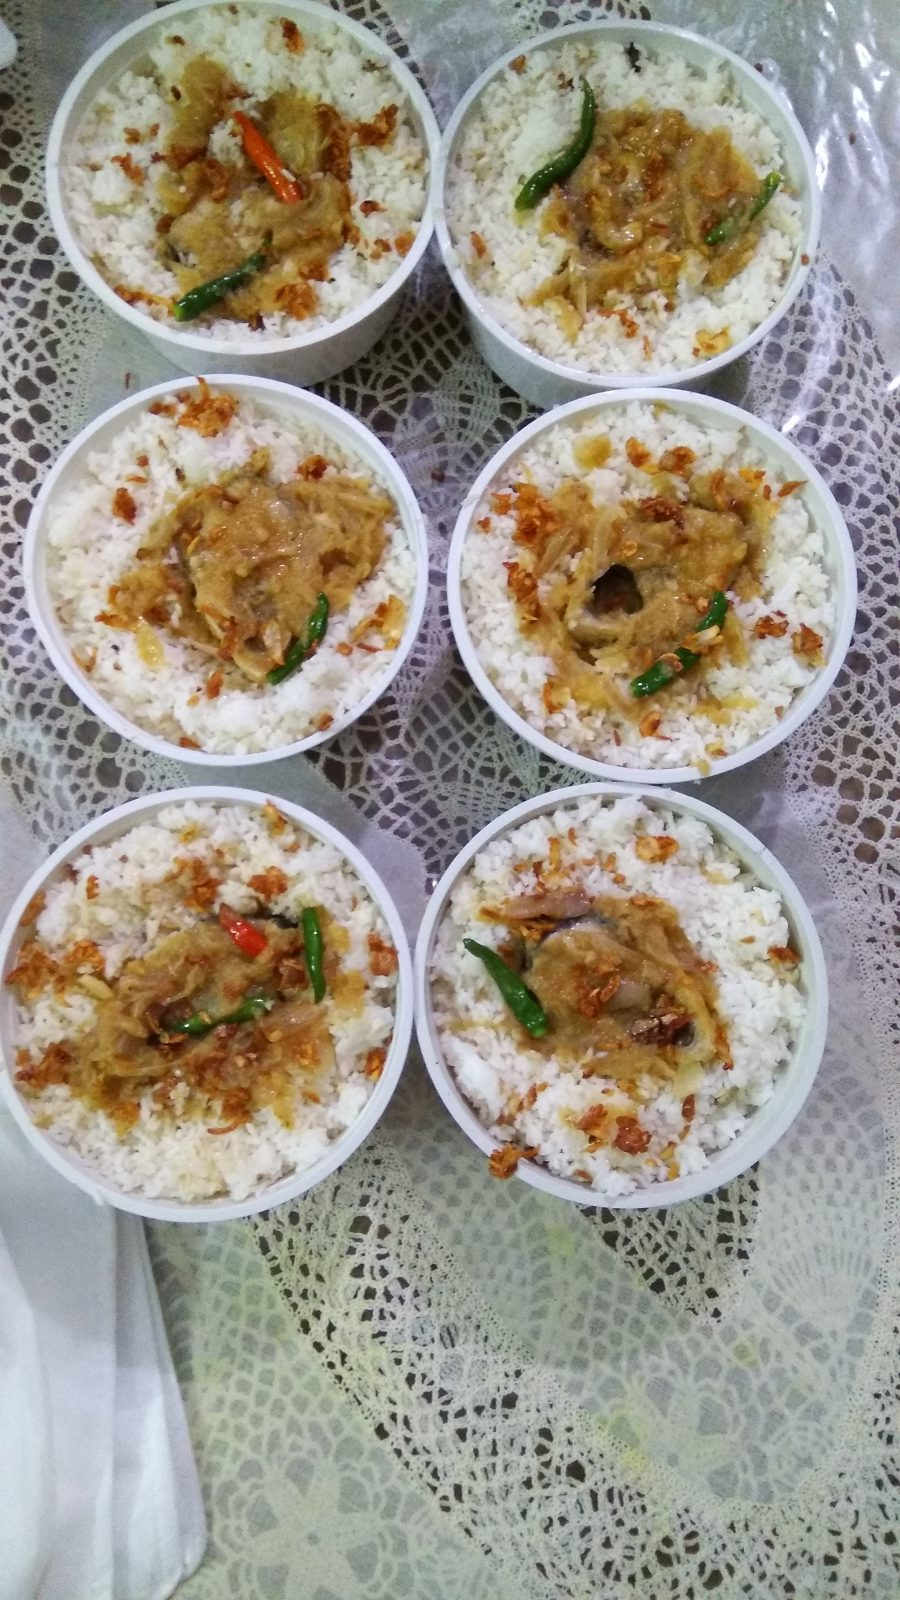 Ilish Polaw from Nuzhat's Dine